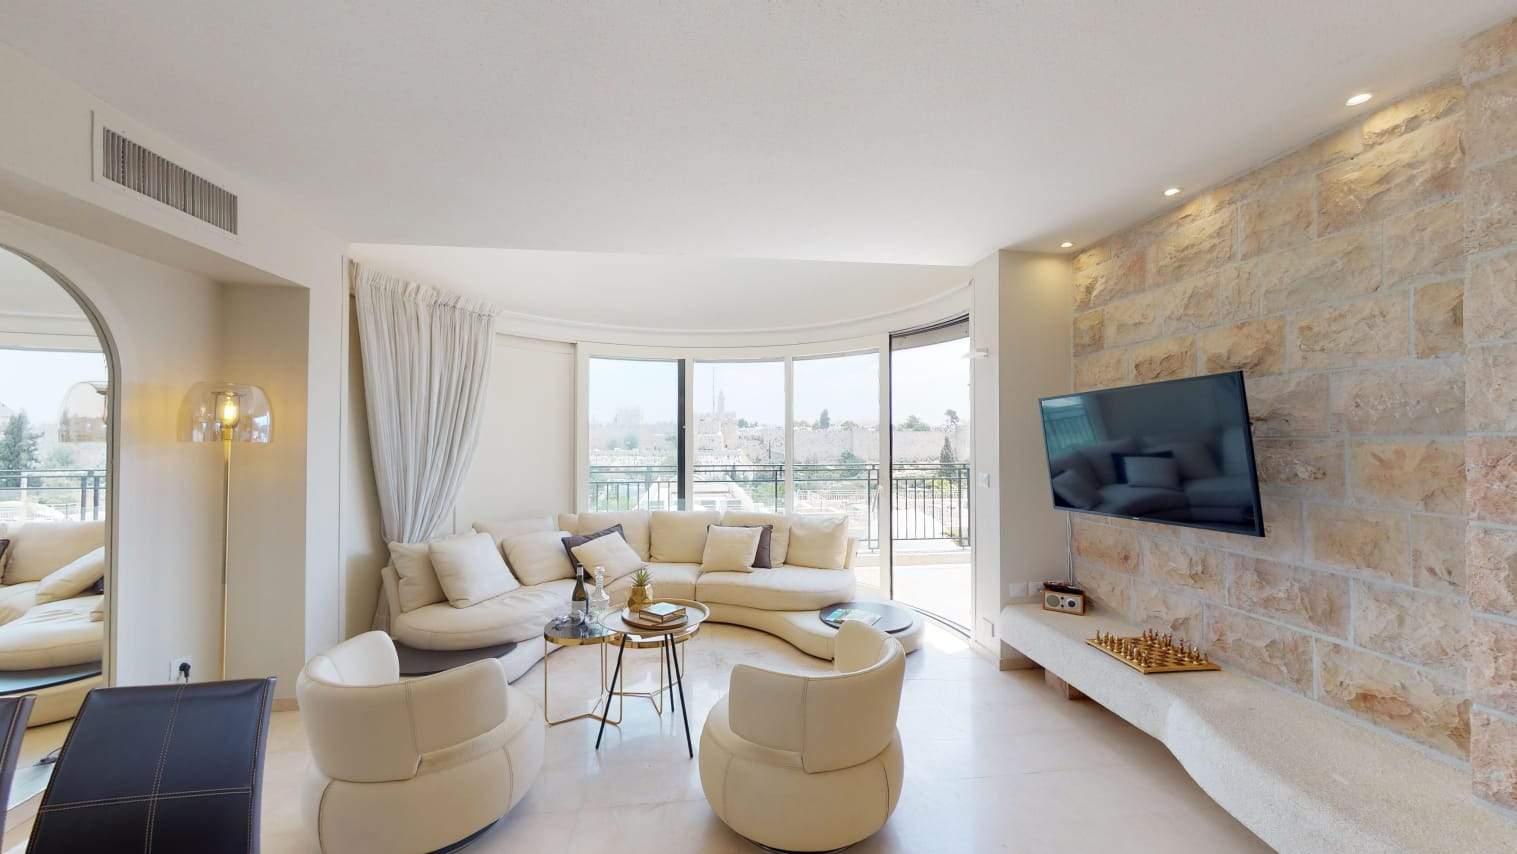 3.Old City views Luxury Mamilla 3 BR image #13